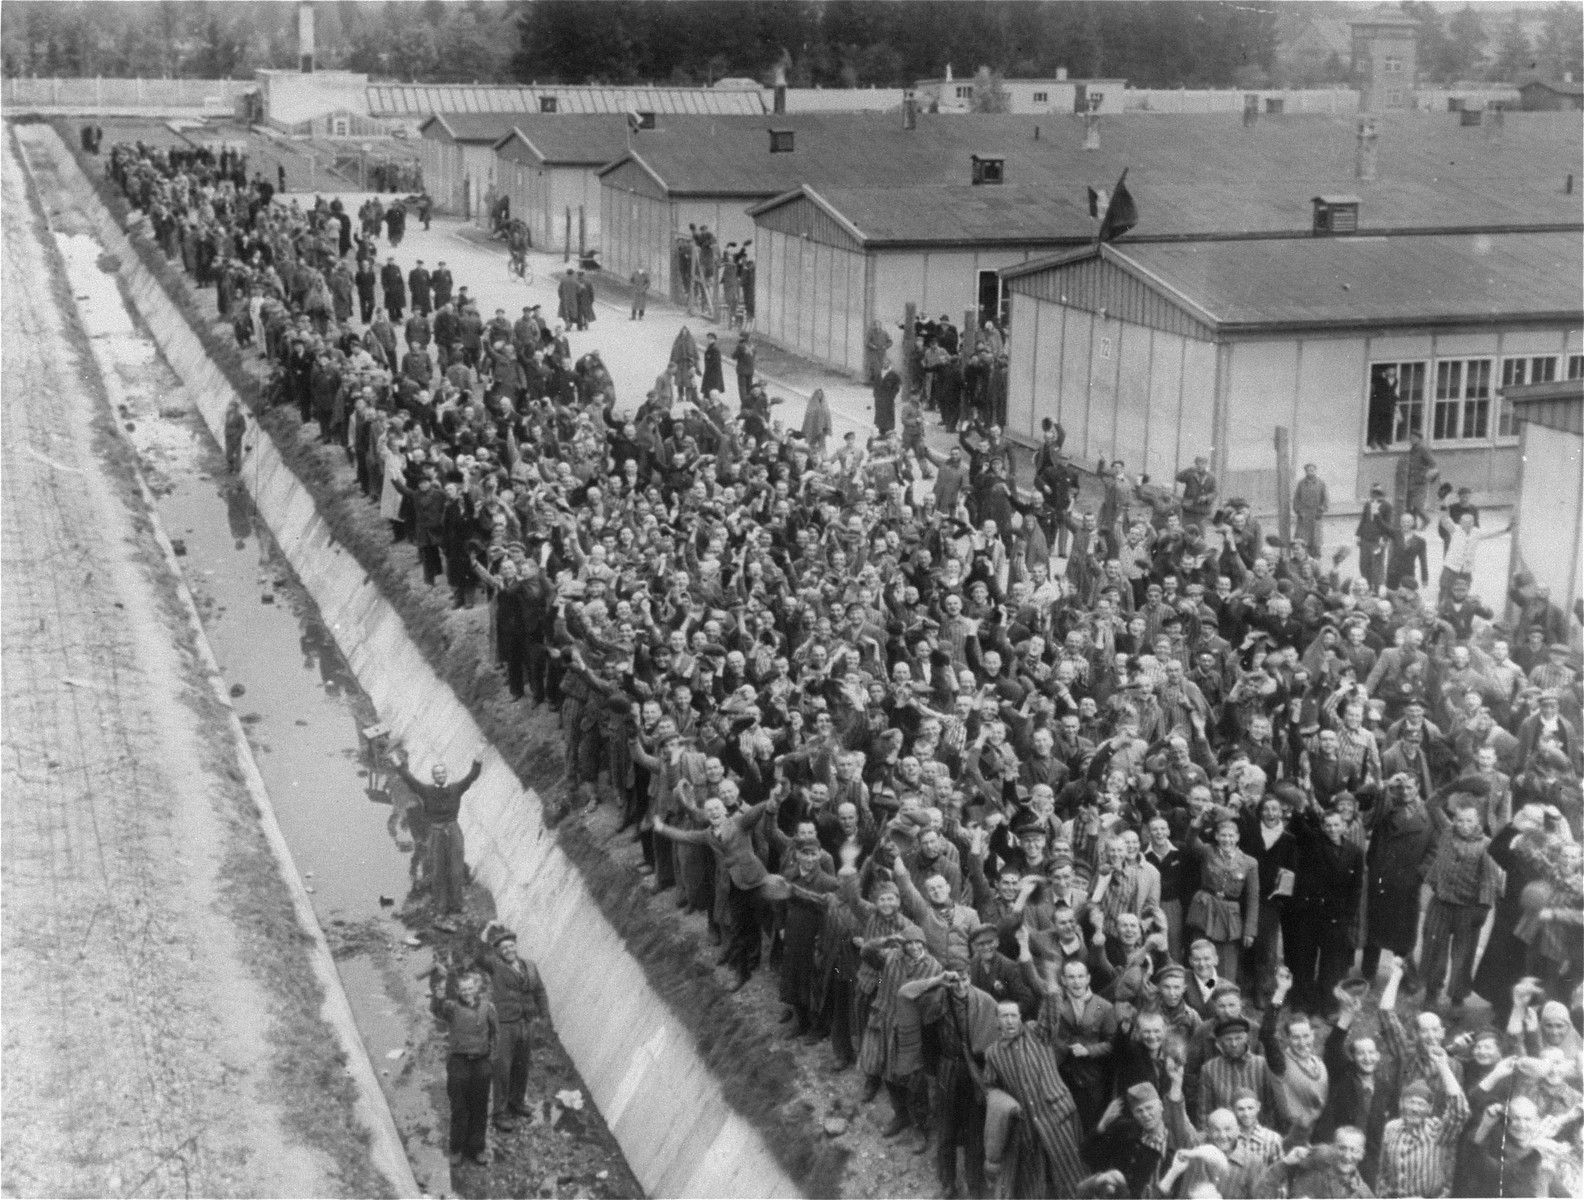 Dachau survivors gather by the moat to greet American liberators.